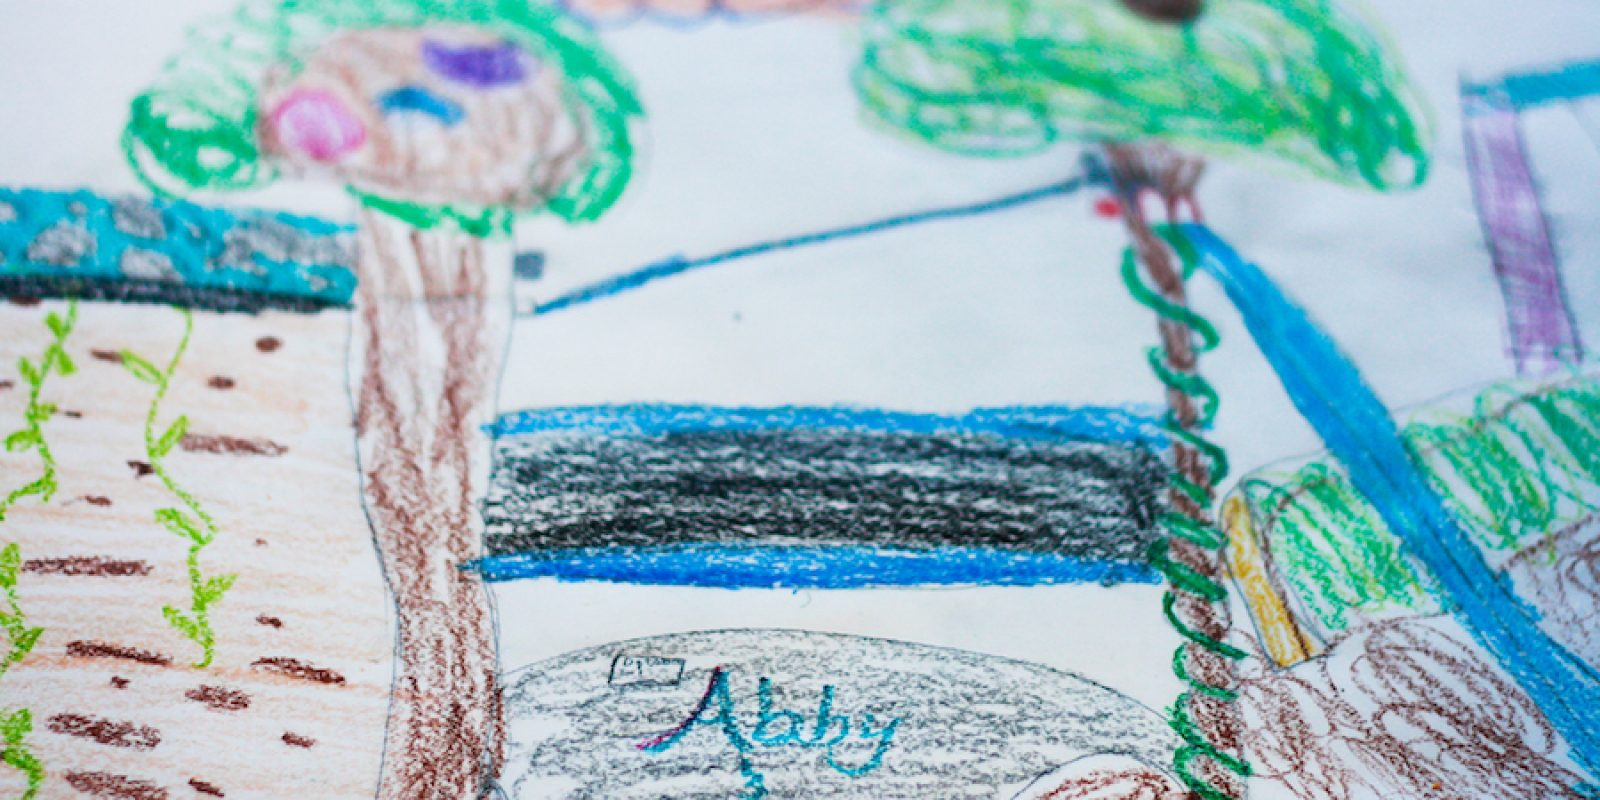 Anna and Abby's Yard Drawing